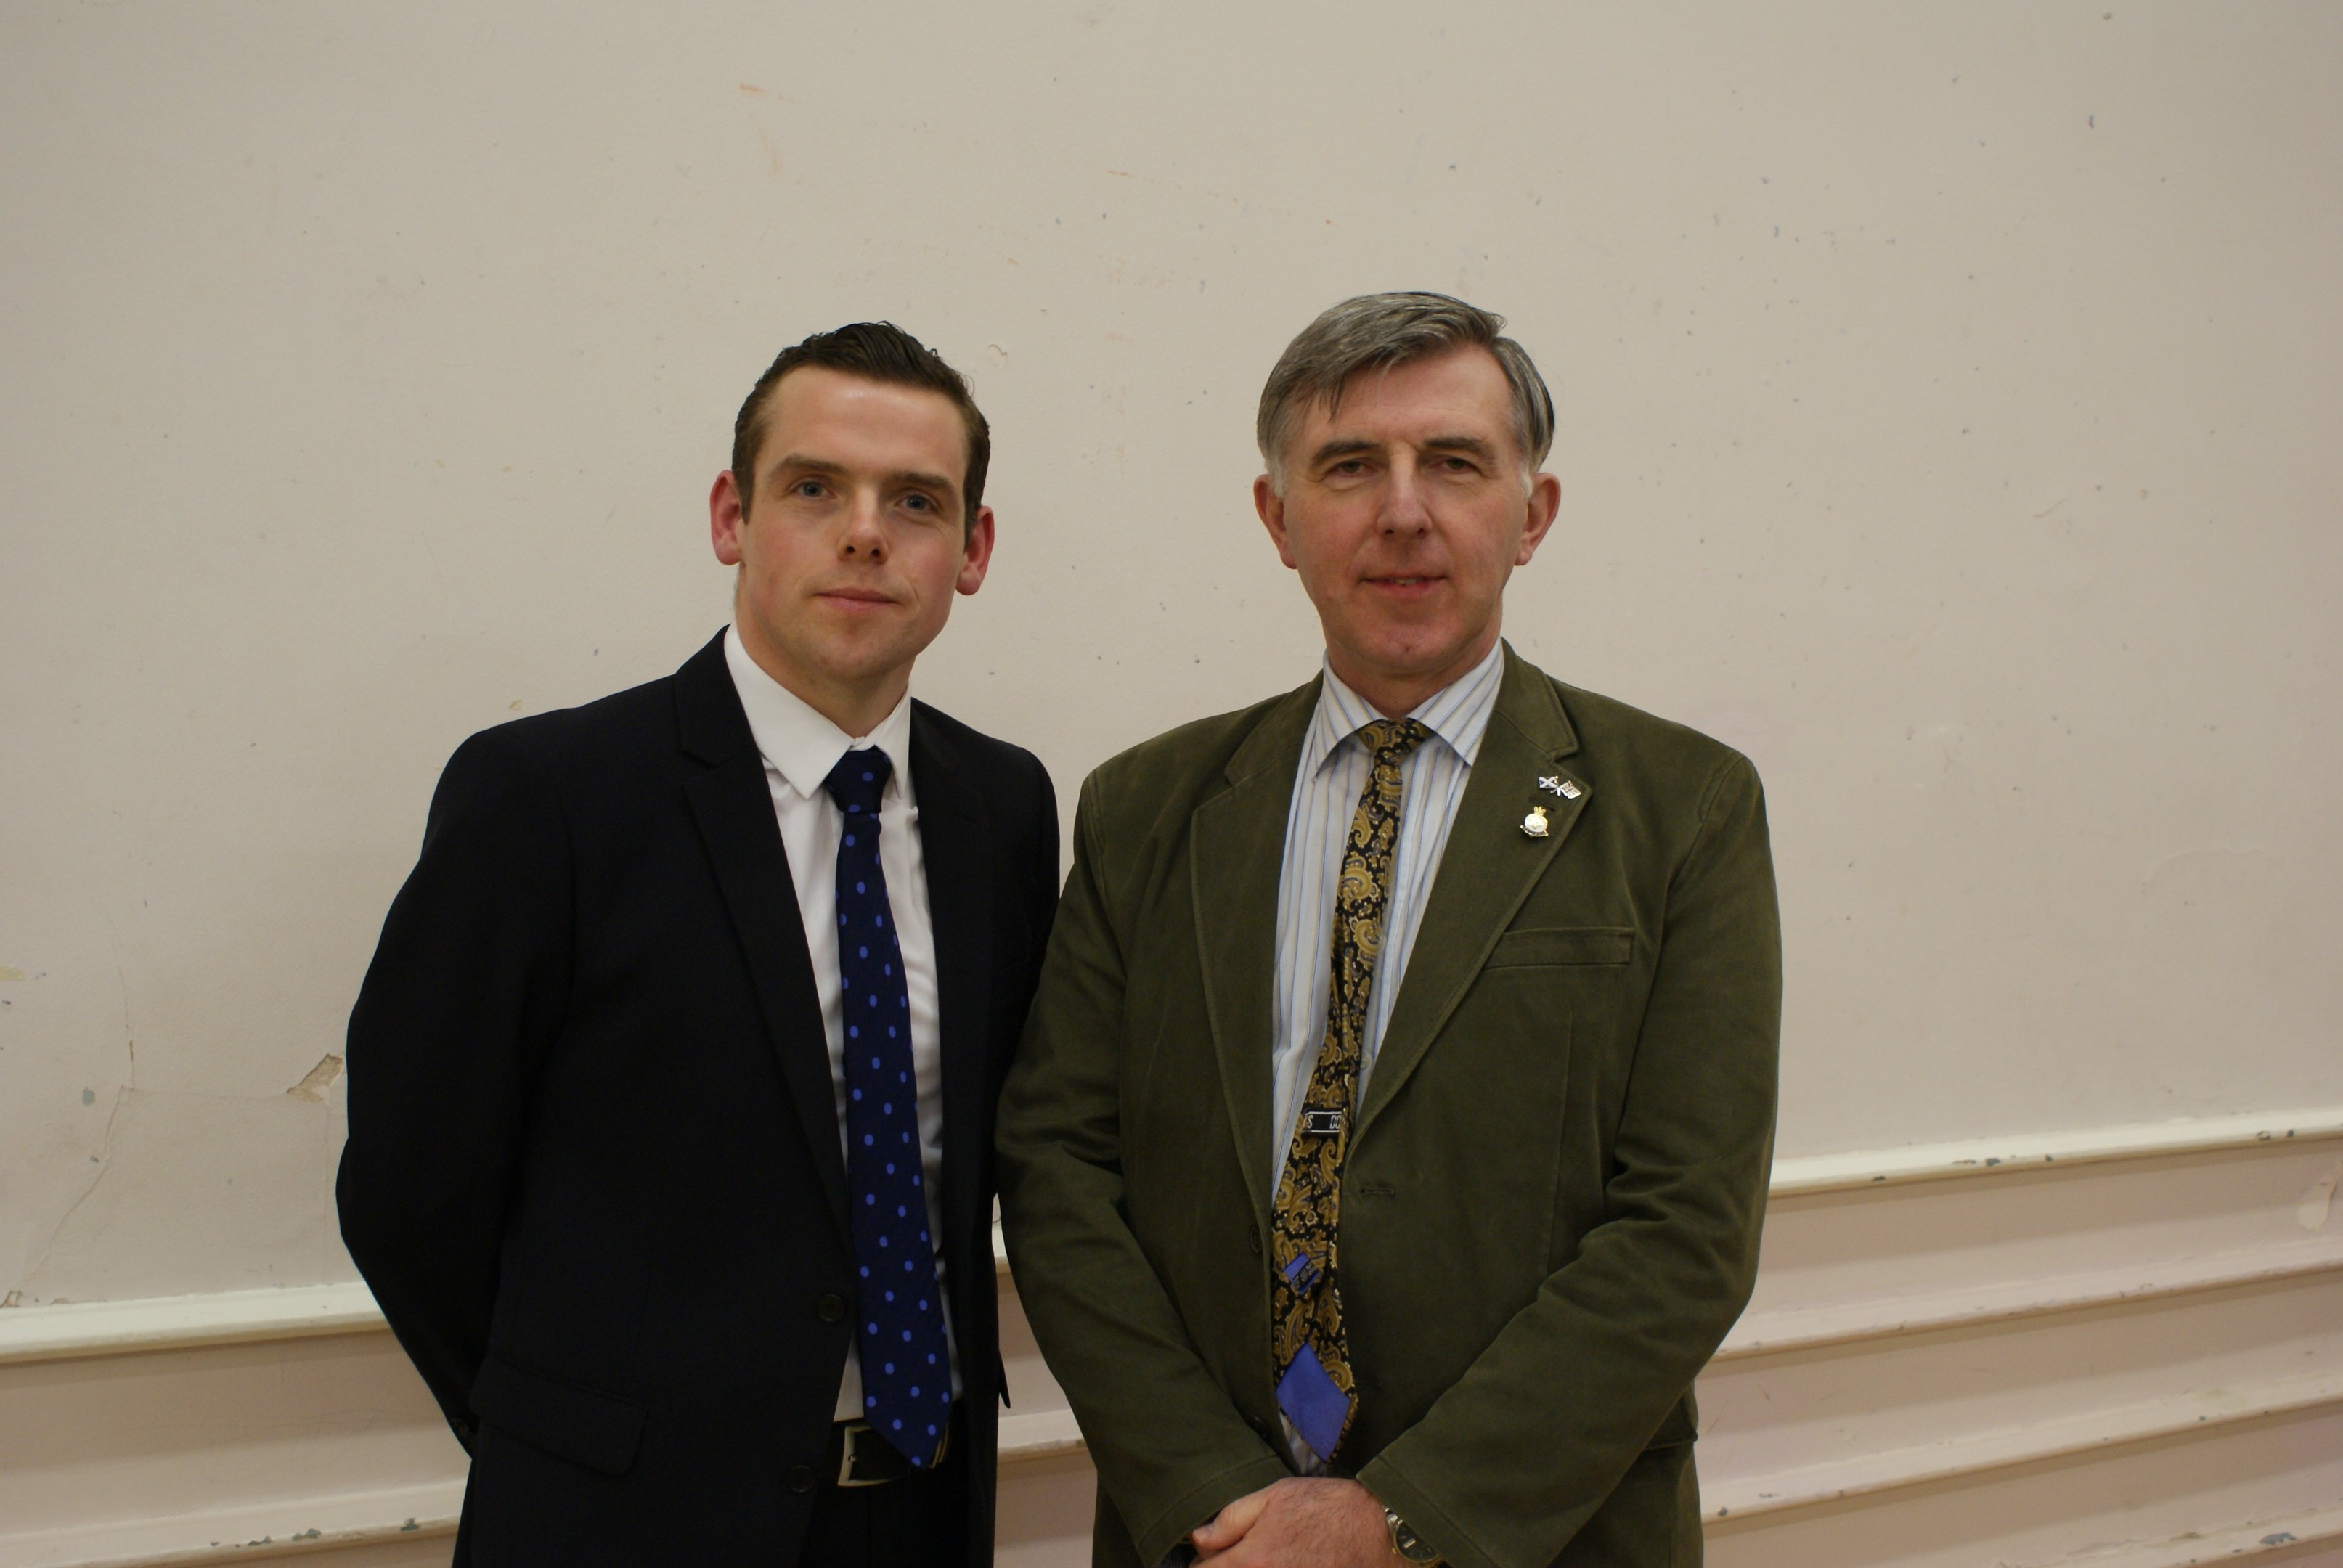 Highlands and Islands MSP Douglas Ross, pictured left, believes Donald Gatt's experience will be an asset to Moray Council.